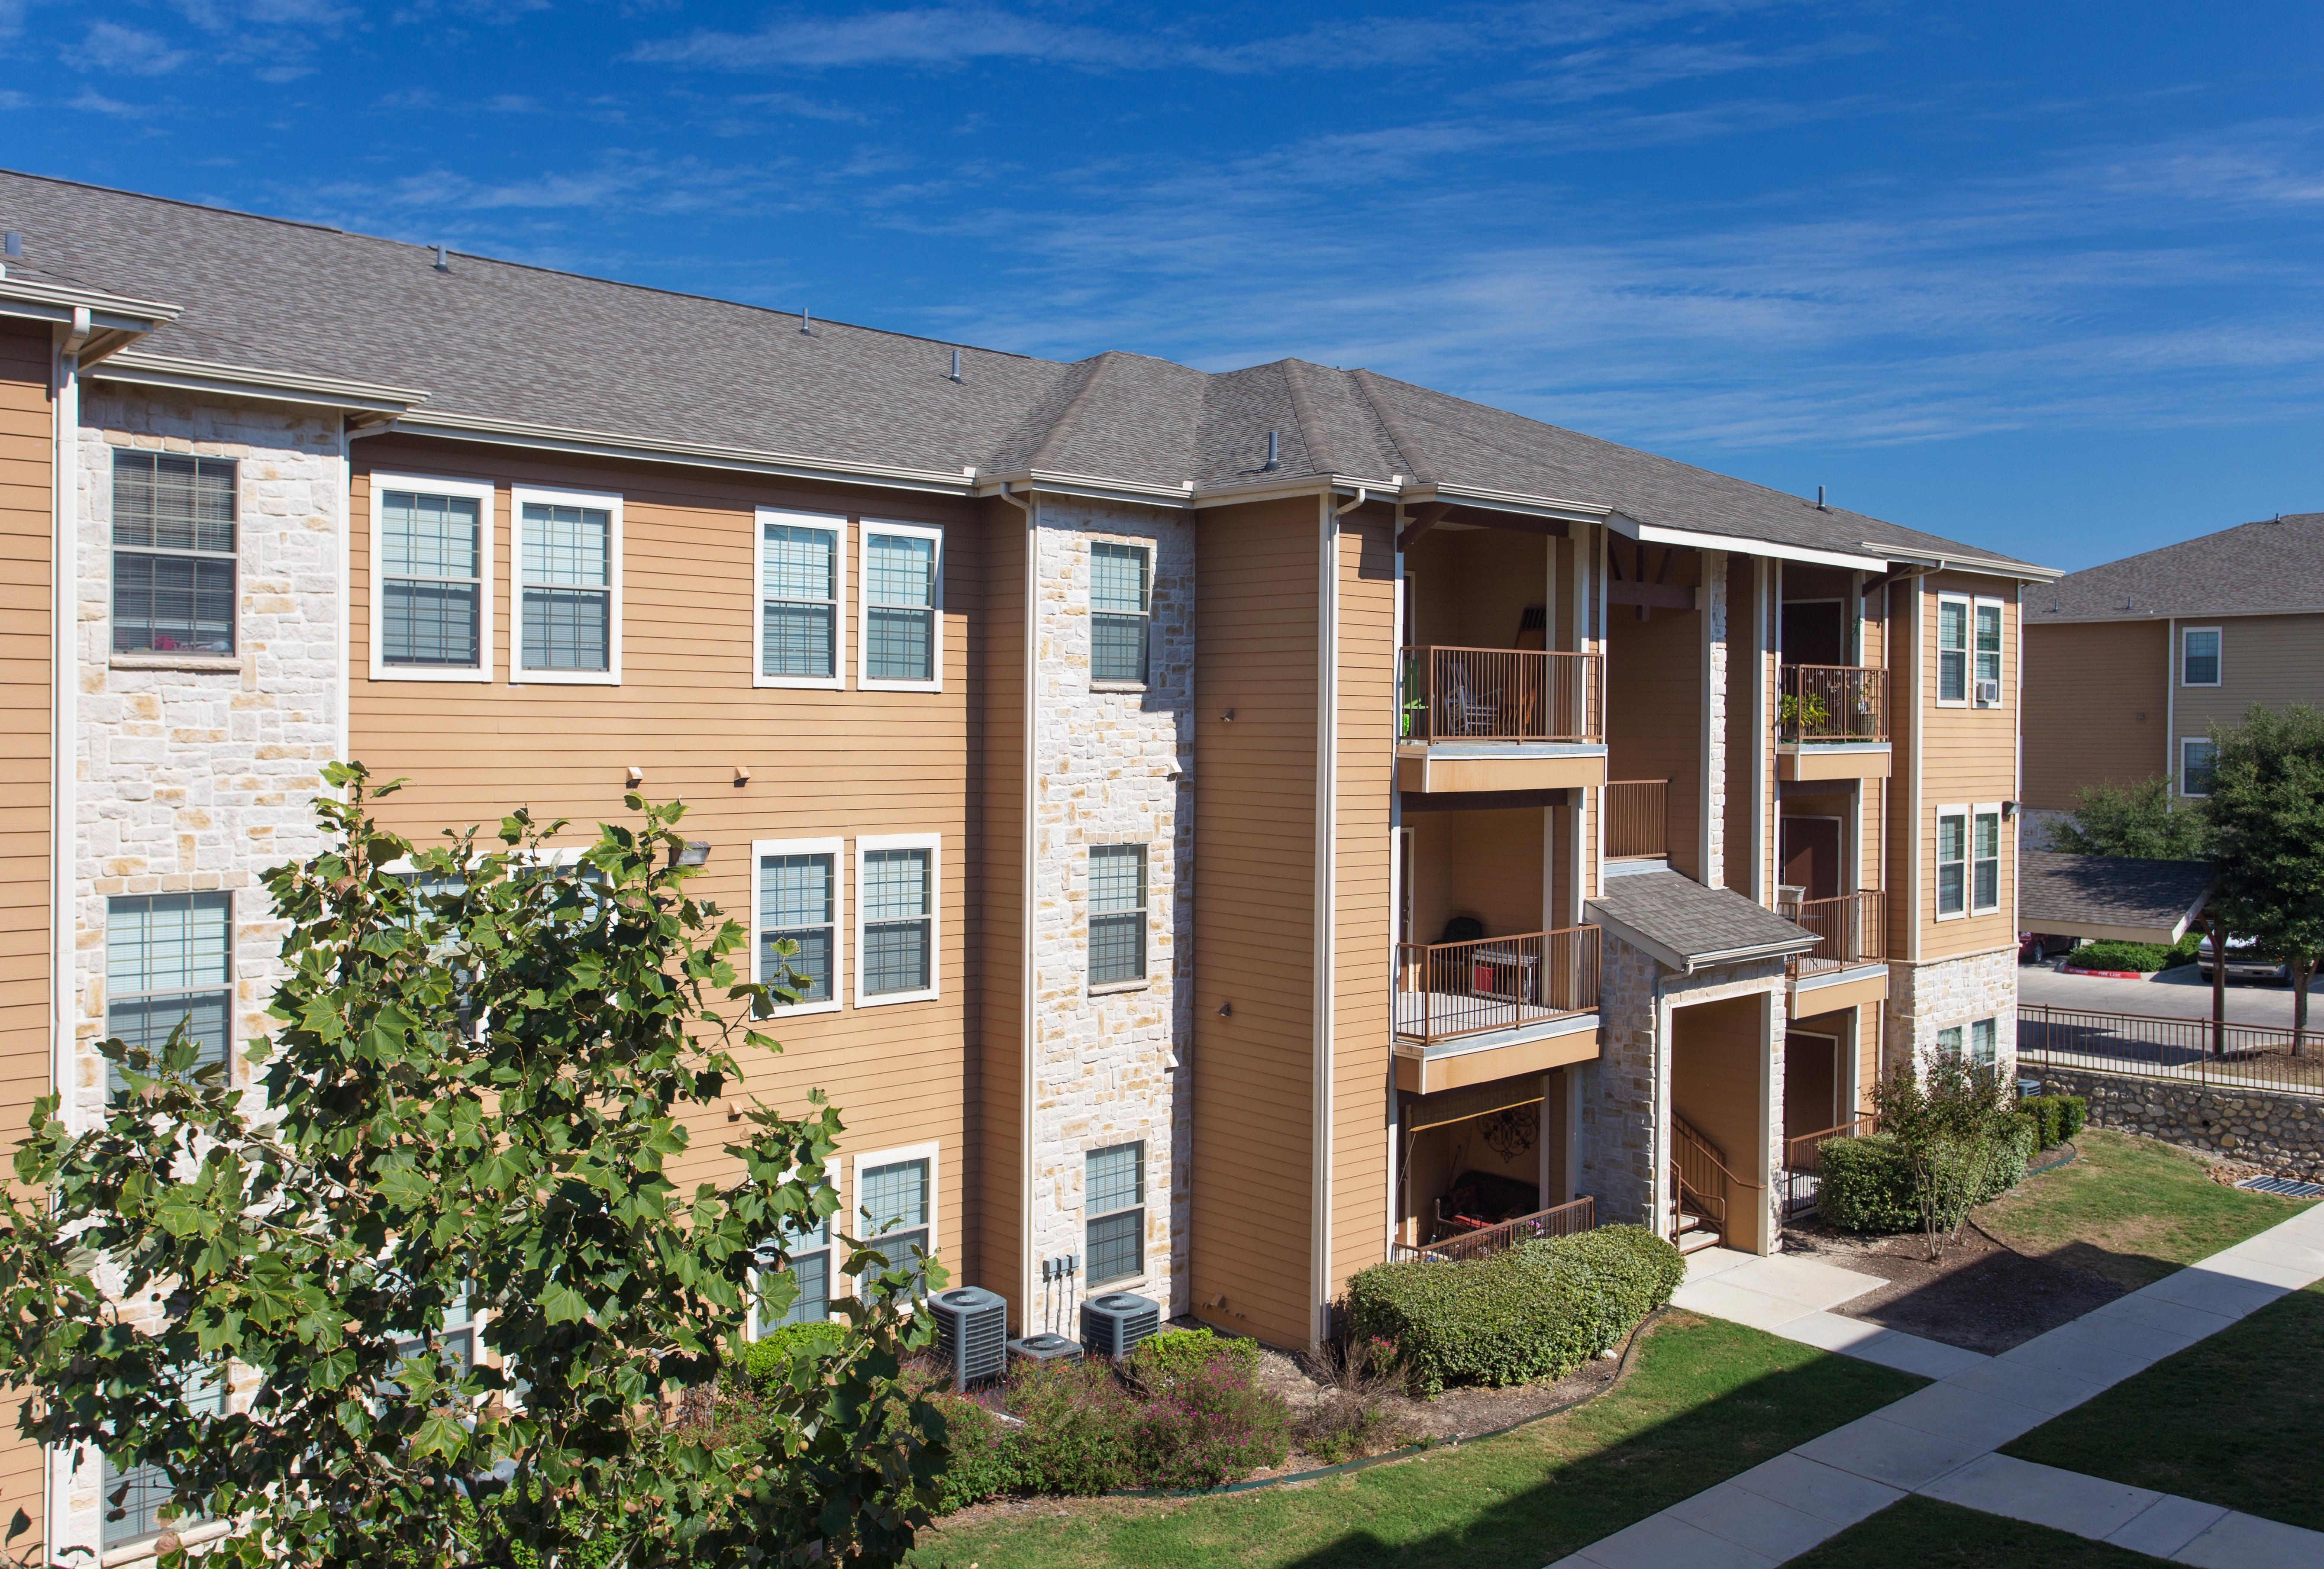 Waterford Place Apartments TX 1360 W County Line Rd New Braunfels